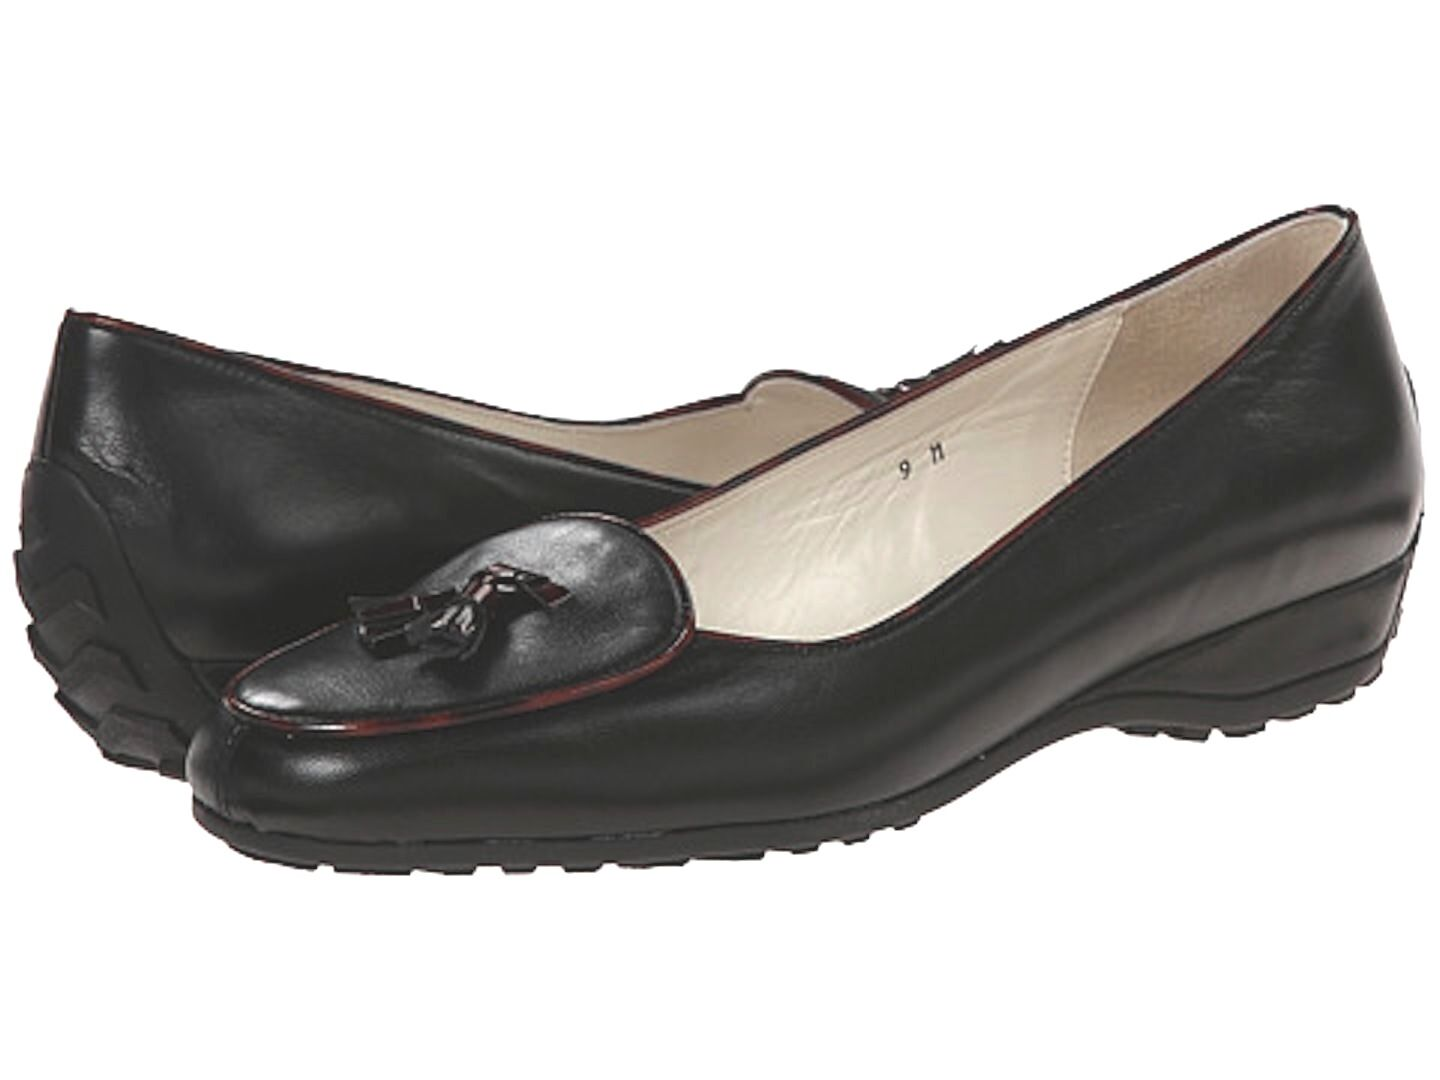 Sesto Meucci Cuir Marche voiture Tassel Chaussures Noir Tortue 6,5 Italie NEW IN BOX 270